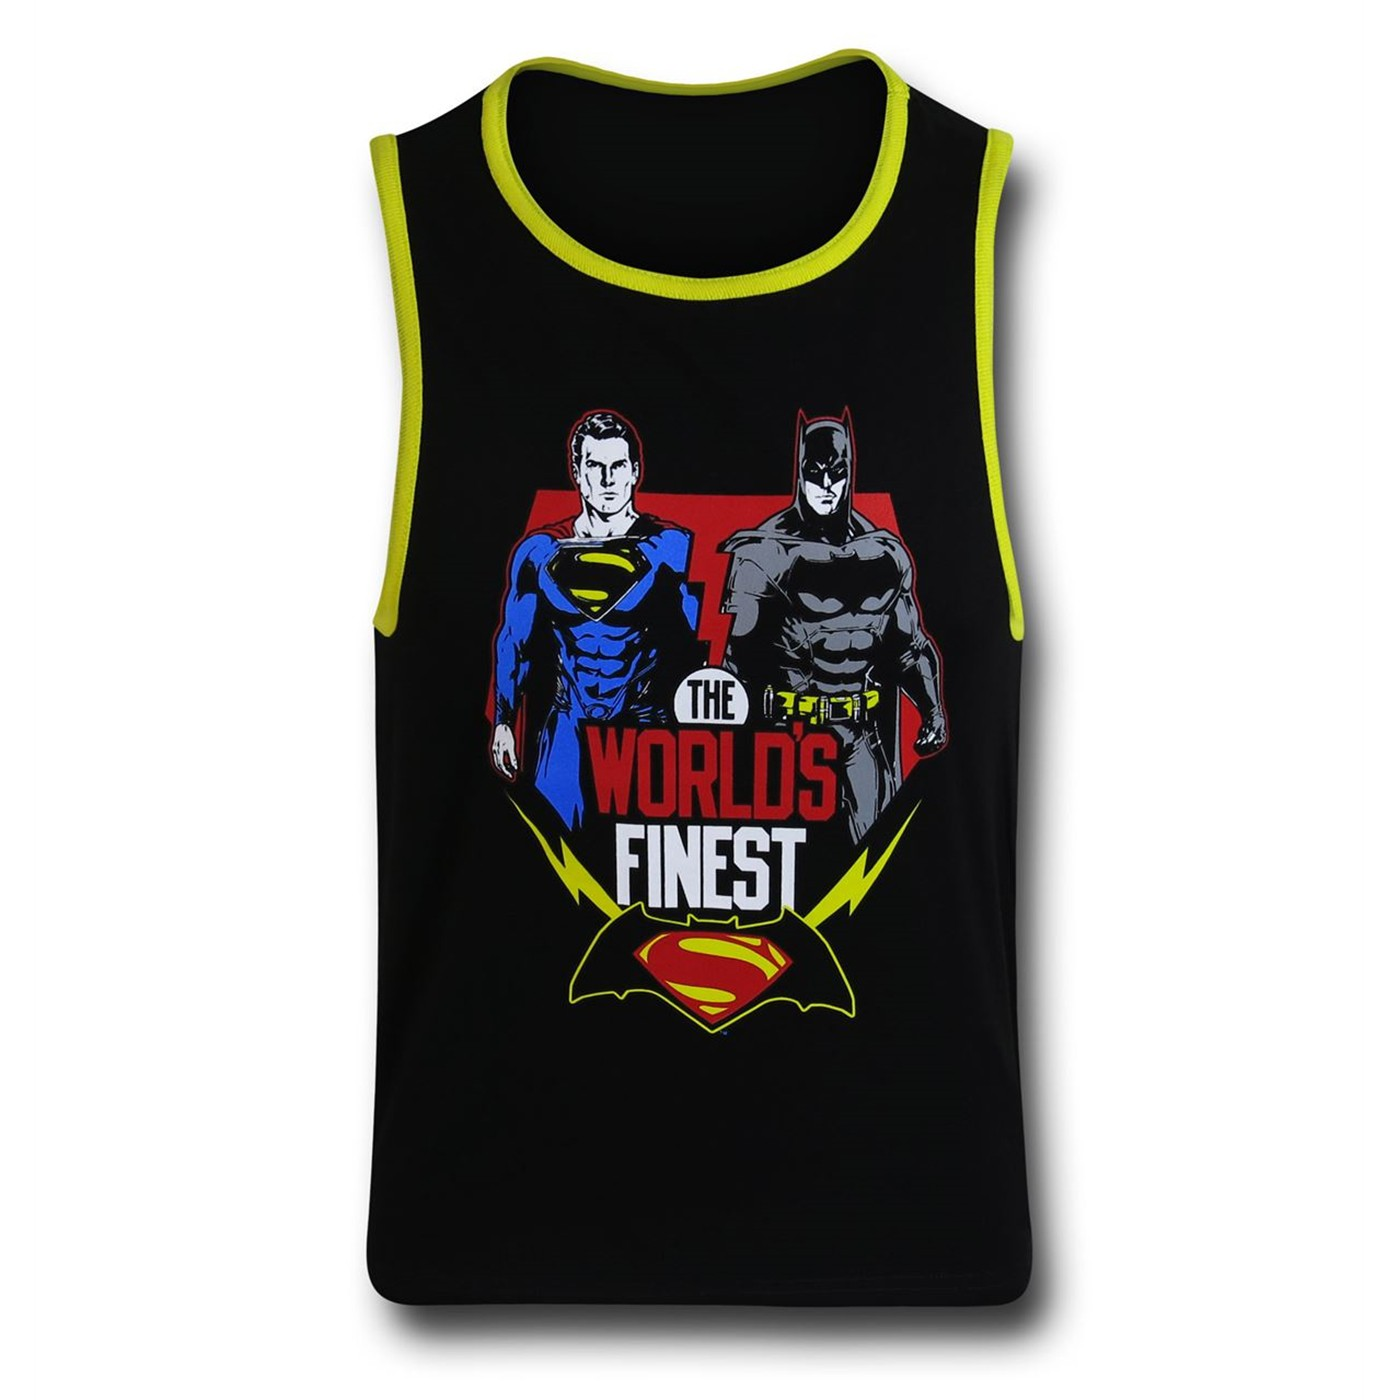 Batman Vs Superman World's Finest Kids Tank Top